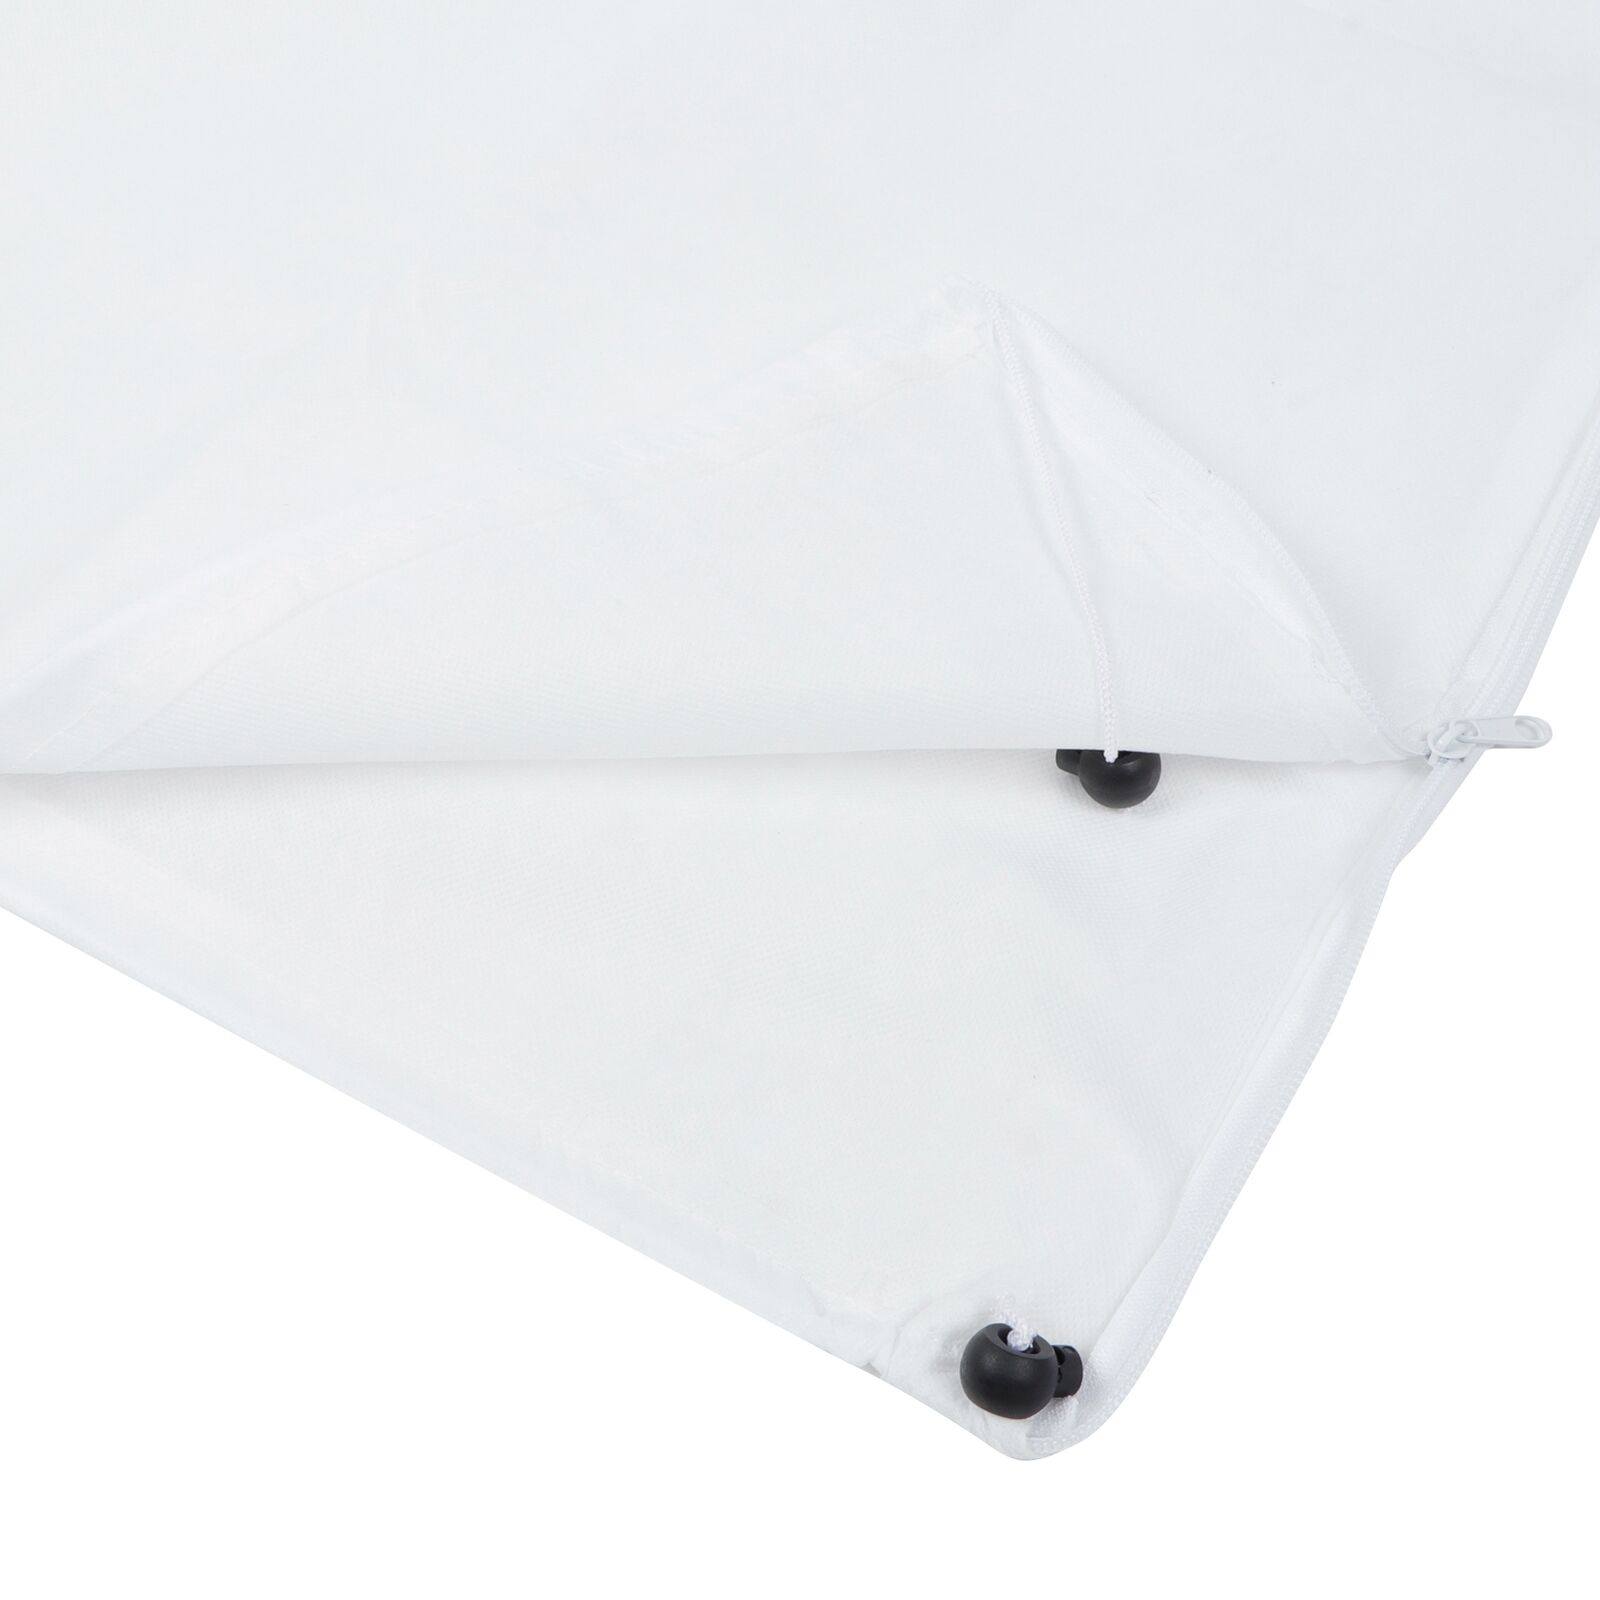 1.2x1.8m Outdoor Garden Plant Covers Non‑woven Fabric Freeze Protection For Cold